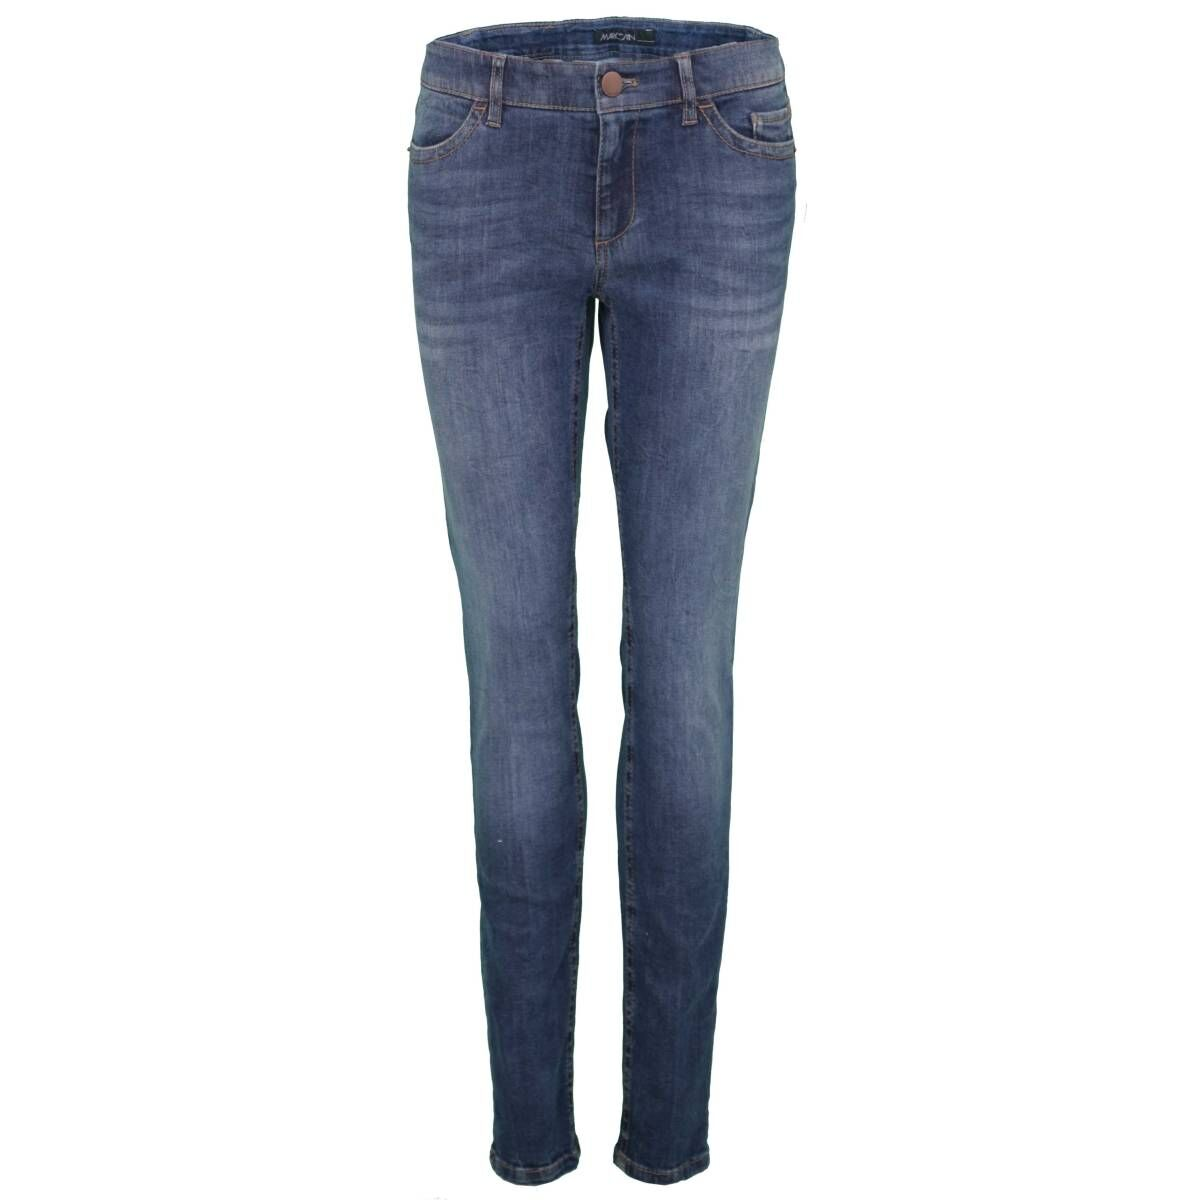 Sudan Make clear battery  Marc Cain trousers E8277 D01 Jeans Blue by Penninkhoffashion.com